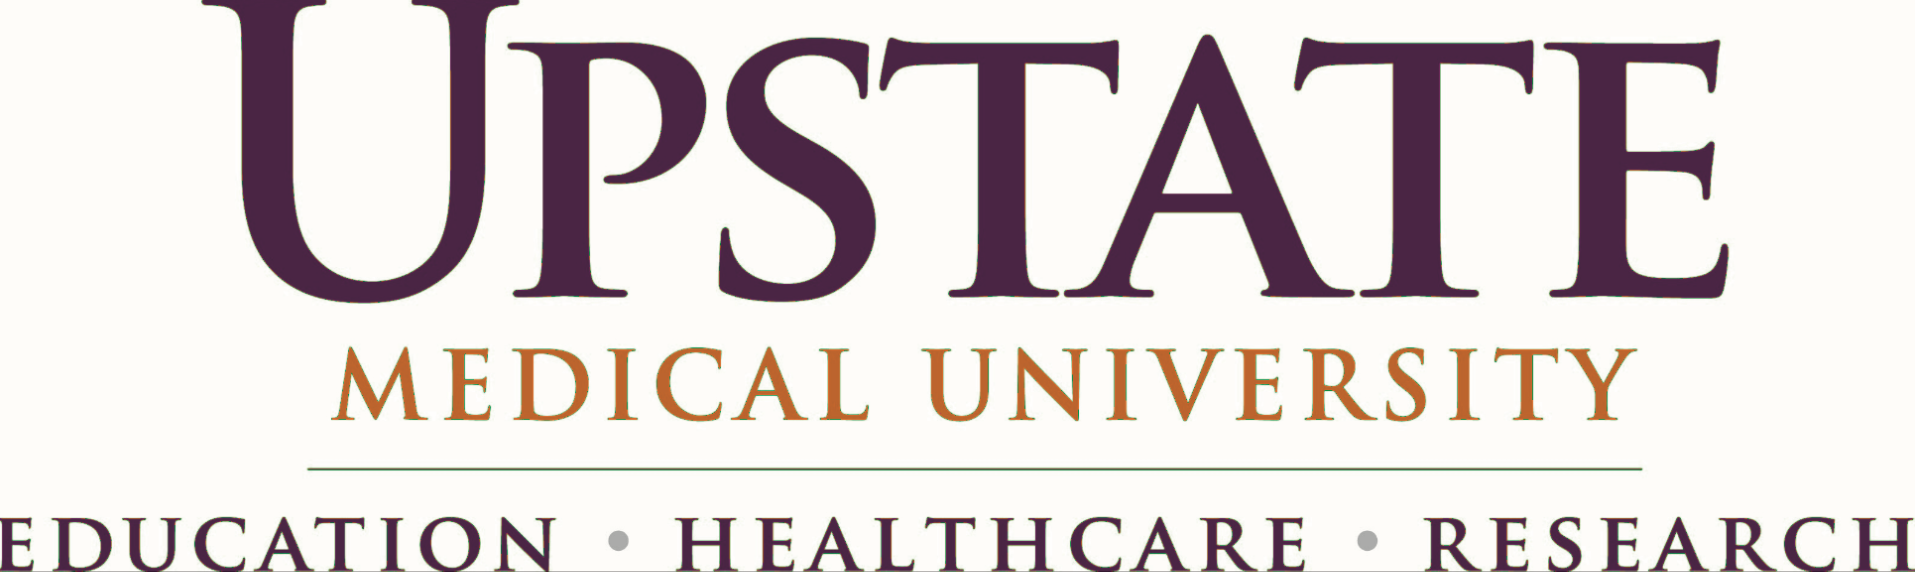 Upstate Medical University